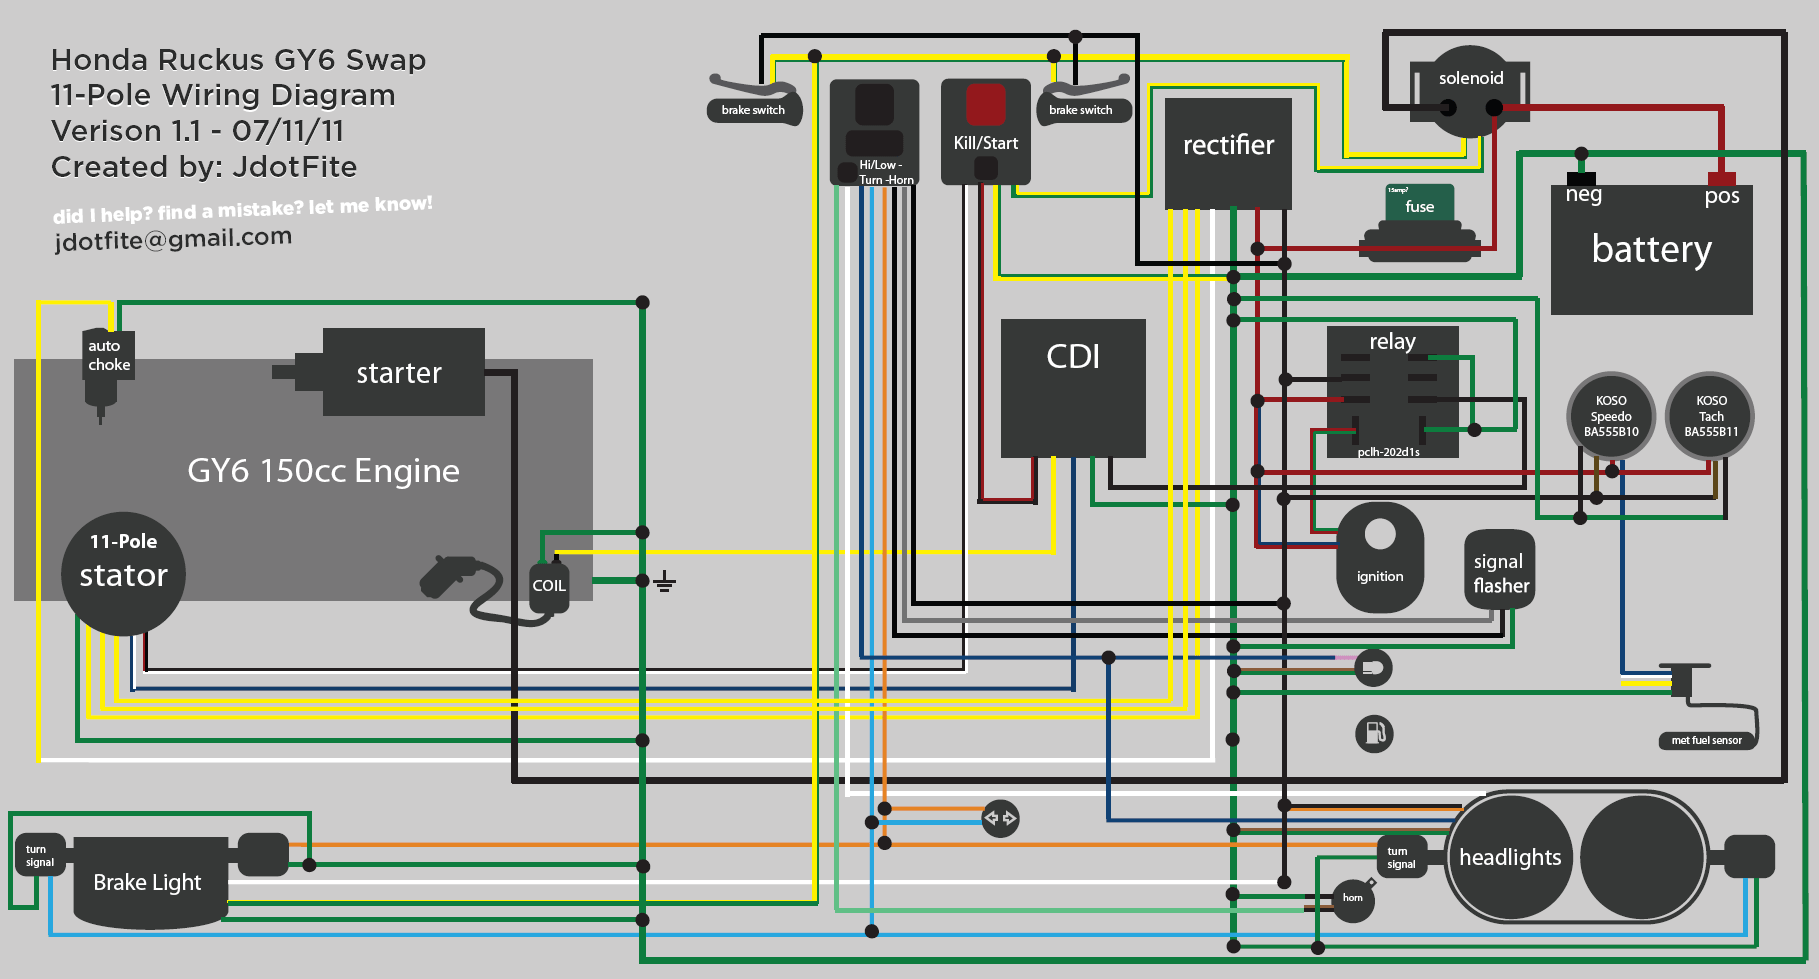 tank scooter wiring diagram moped wiring diagrams wiring diagrams and schematics gy6 moped wiring diagram image about